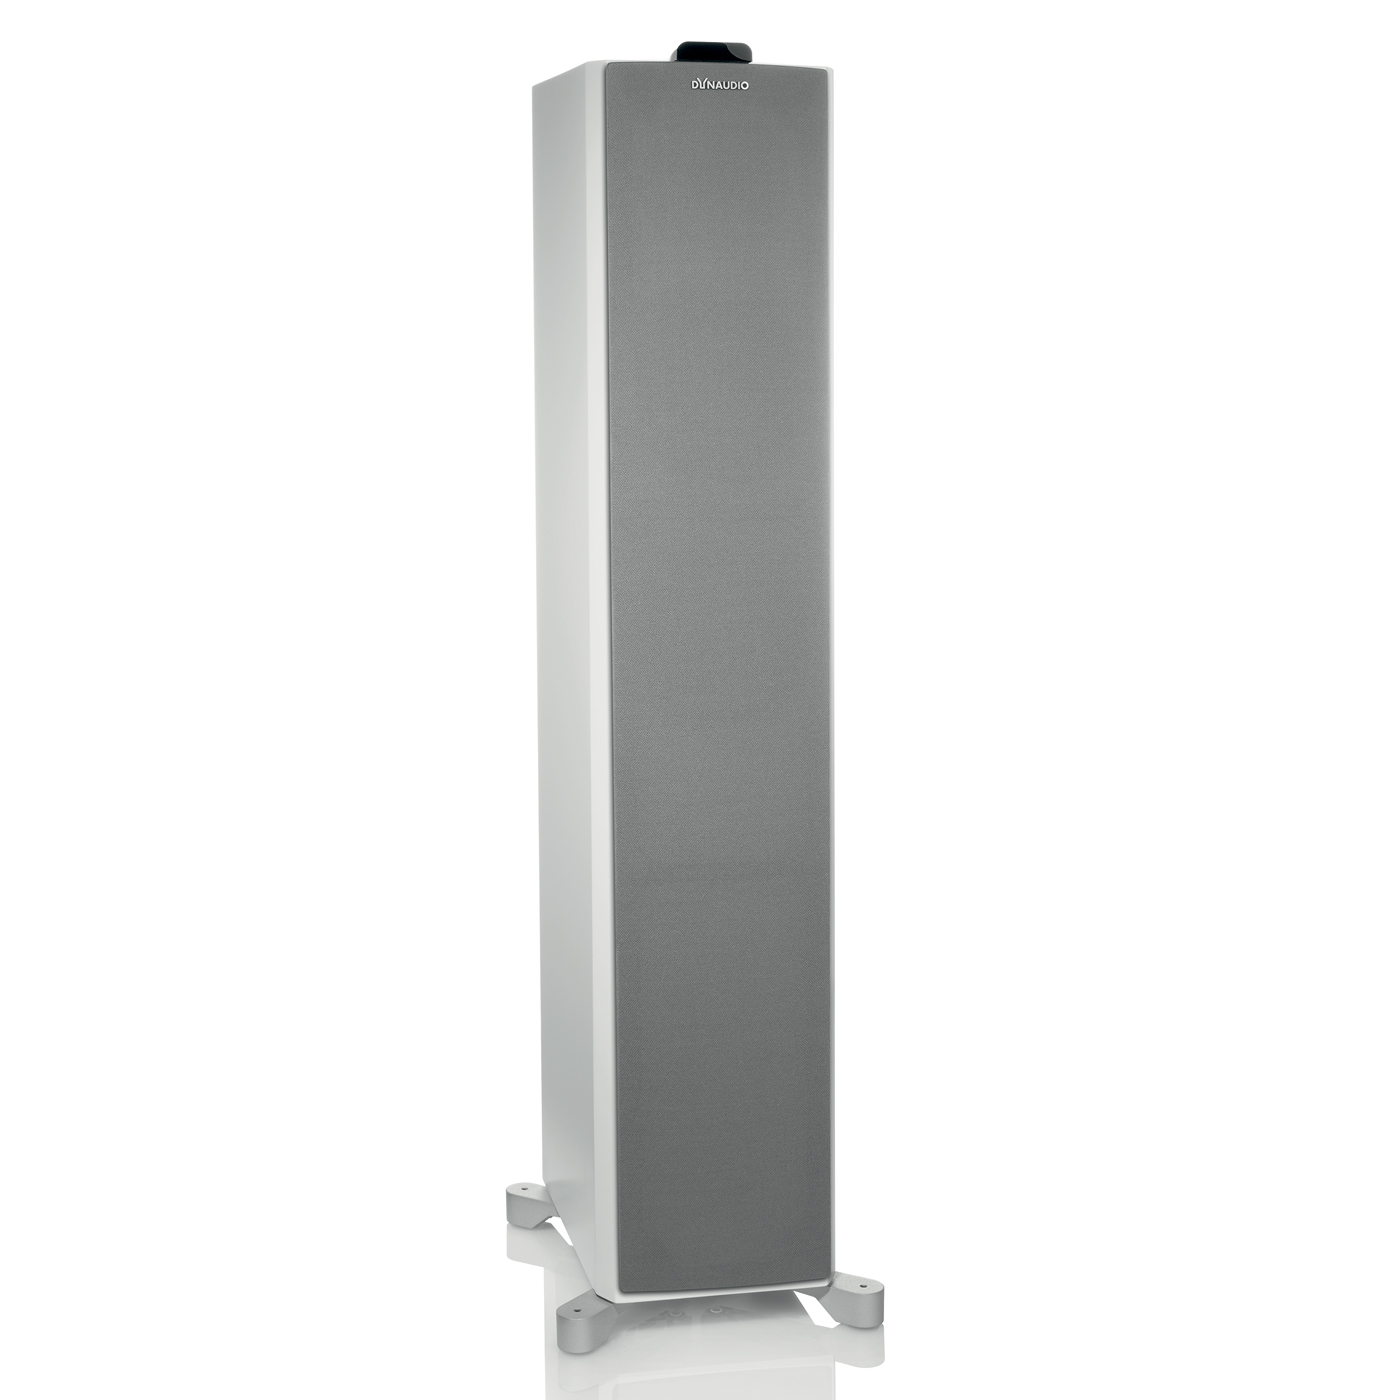 Dynaudio-Xeo-6-Wireless-Floorstanding-Speakers-with-Connect-Wireless-Transmitter thumbnail 16